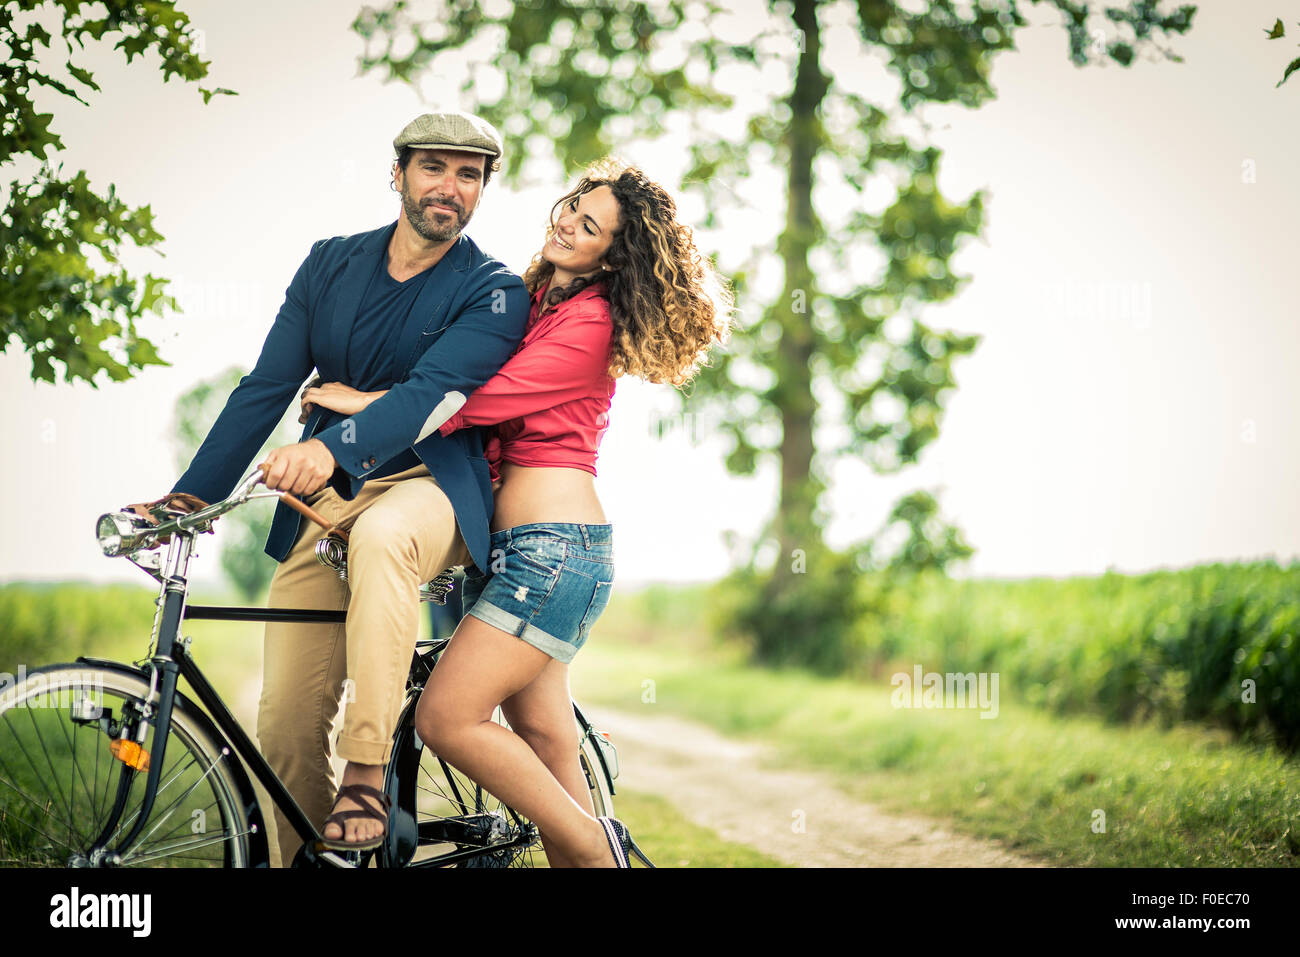 Happy couple having fun while biking on a country road - Stock Image